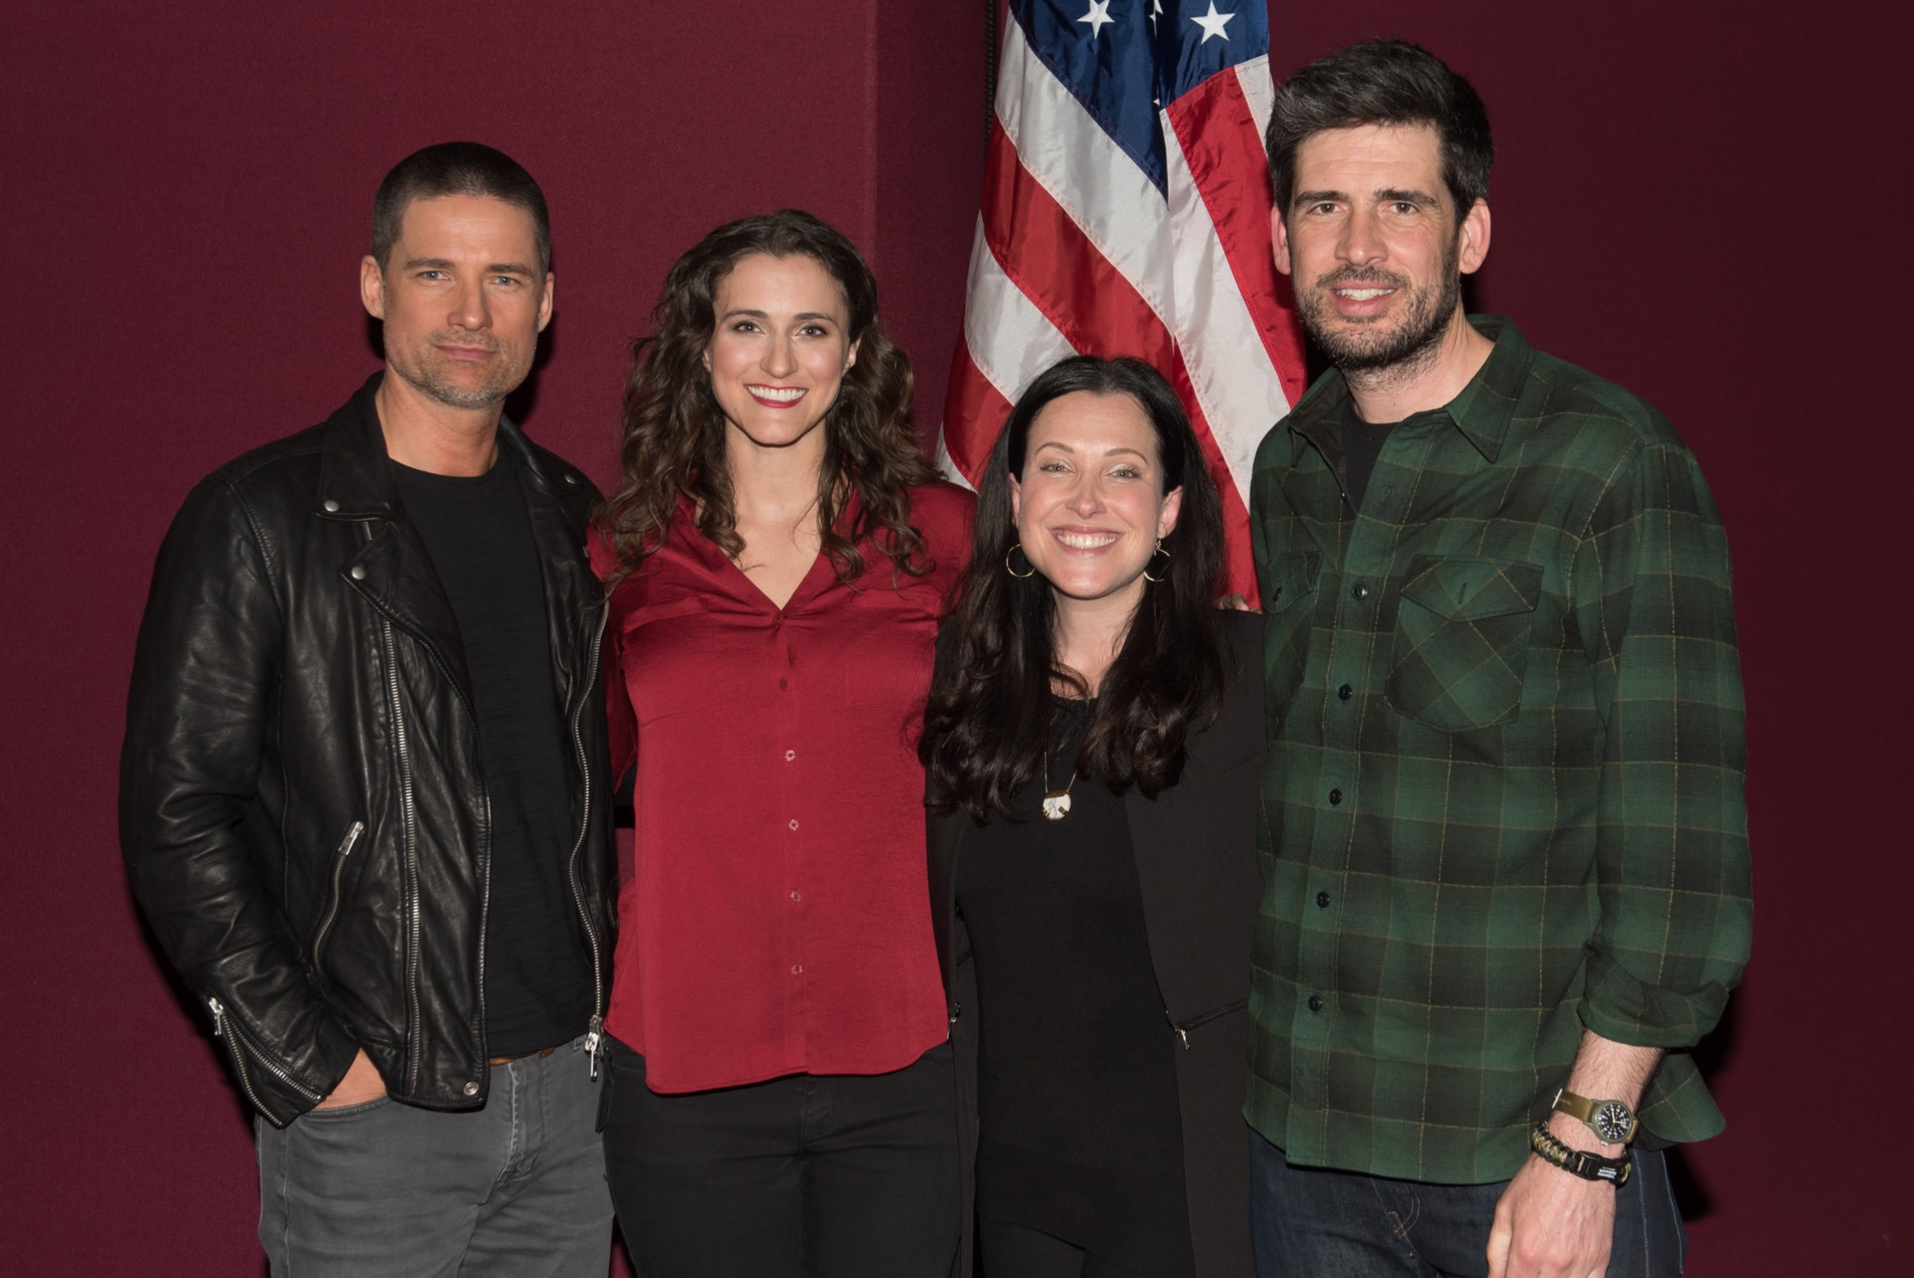 From left to right: Warren Christie ('Nick'), Shannon Corbeil (moderator), Jessica Rhoades (Executive Producer), Mike Daniels (Writer, Creator). Image by Scott Angelhart/NBC.